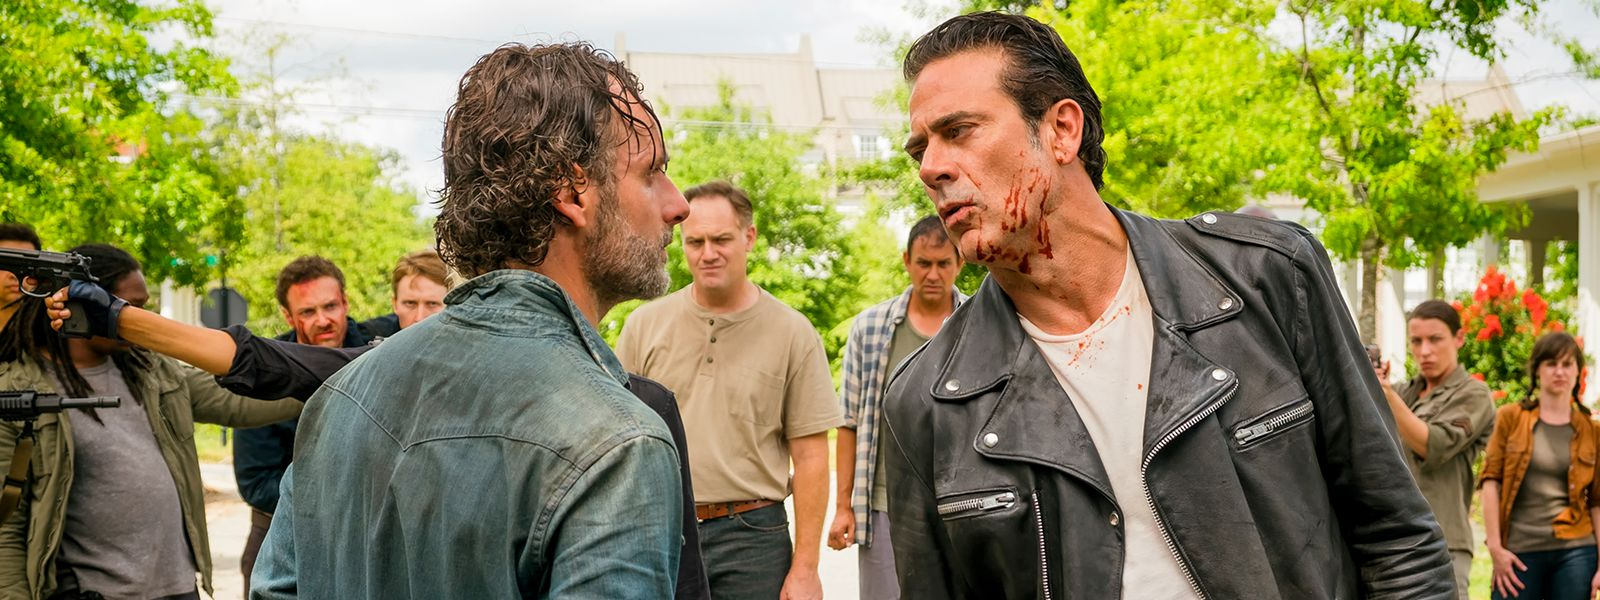 the-walking-dead-episode-708-rick-lincoln-negan-morgan-post-800×600